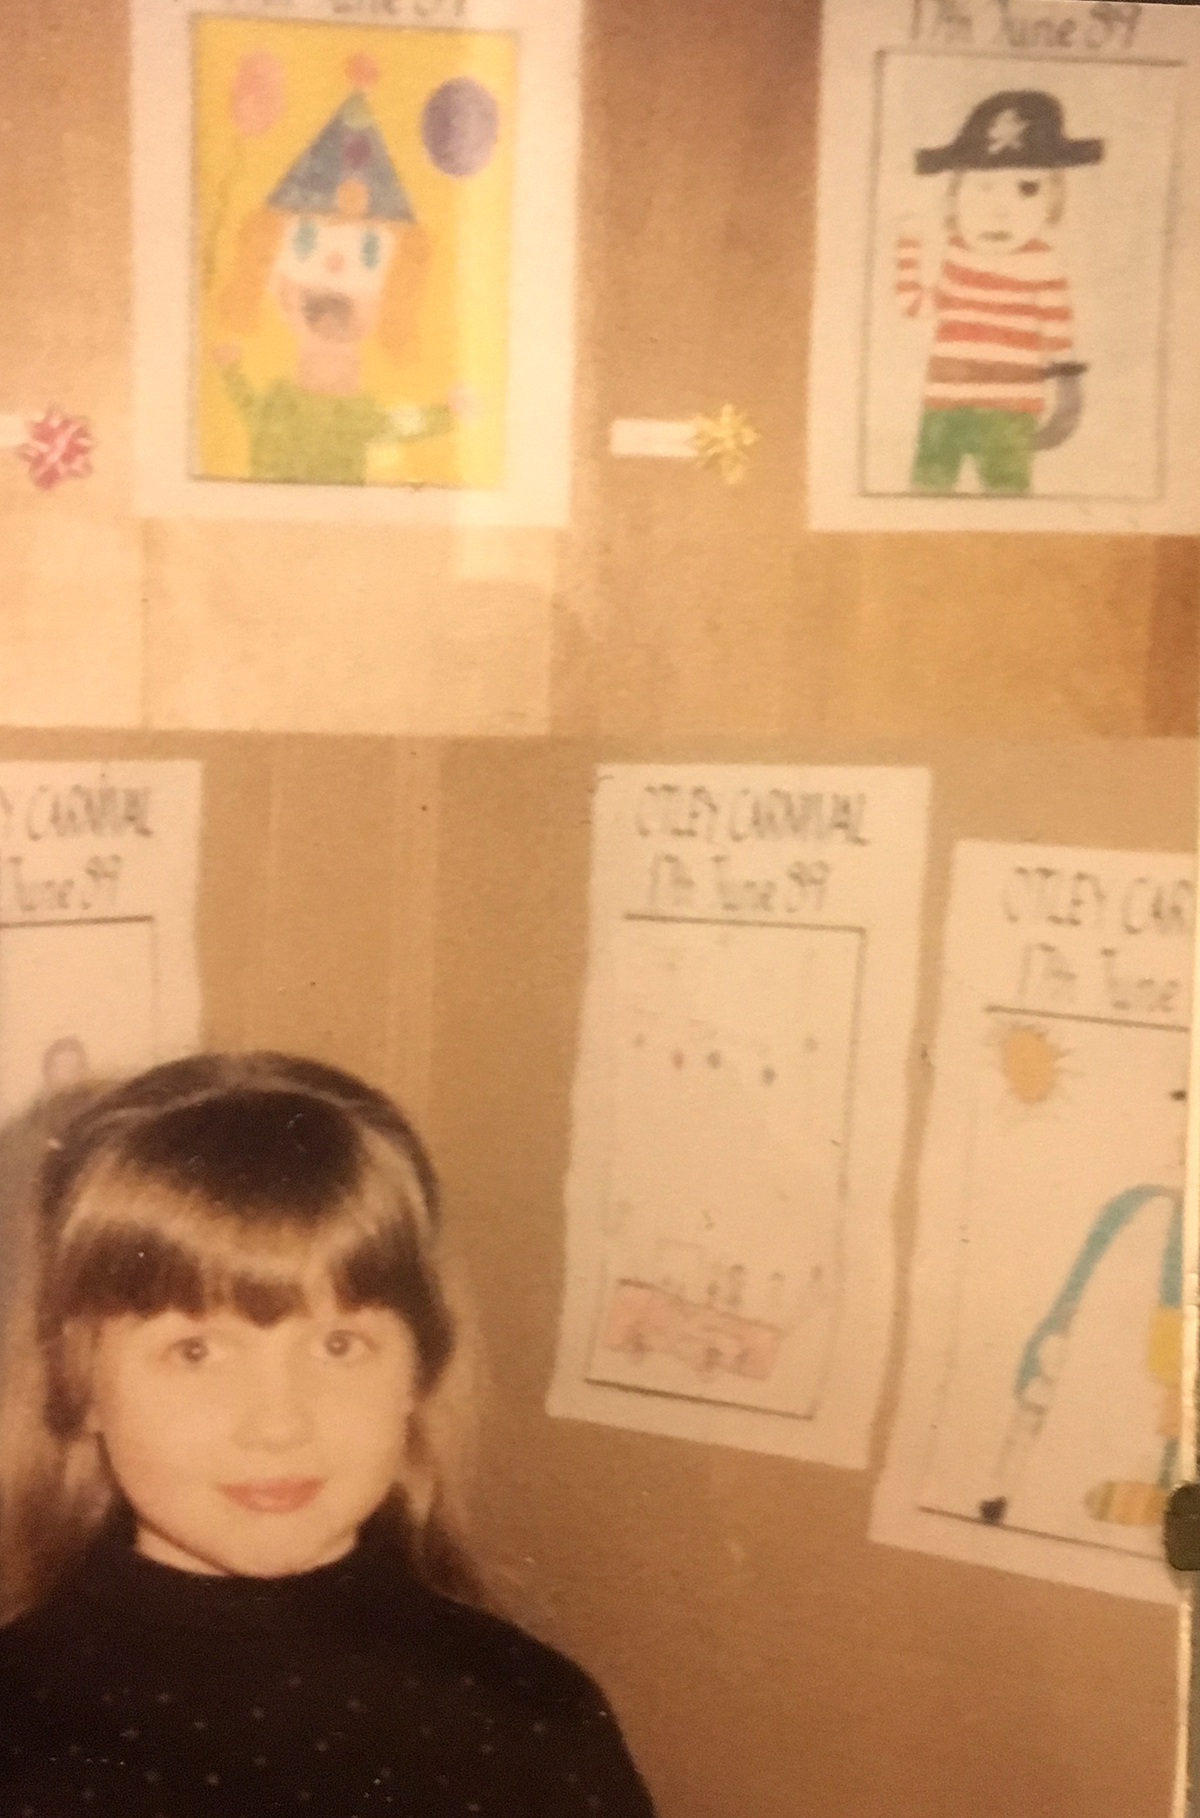 Where the  self-entitled, selfie  attitude began: me winning the Otley carnival art prize in 1989. I demanded a Curly Wurly and an ice pop on the way home. it's been a slippery slope downhill since then.